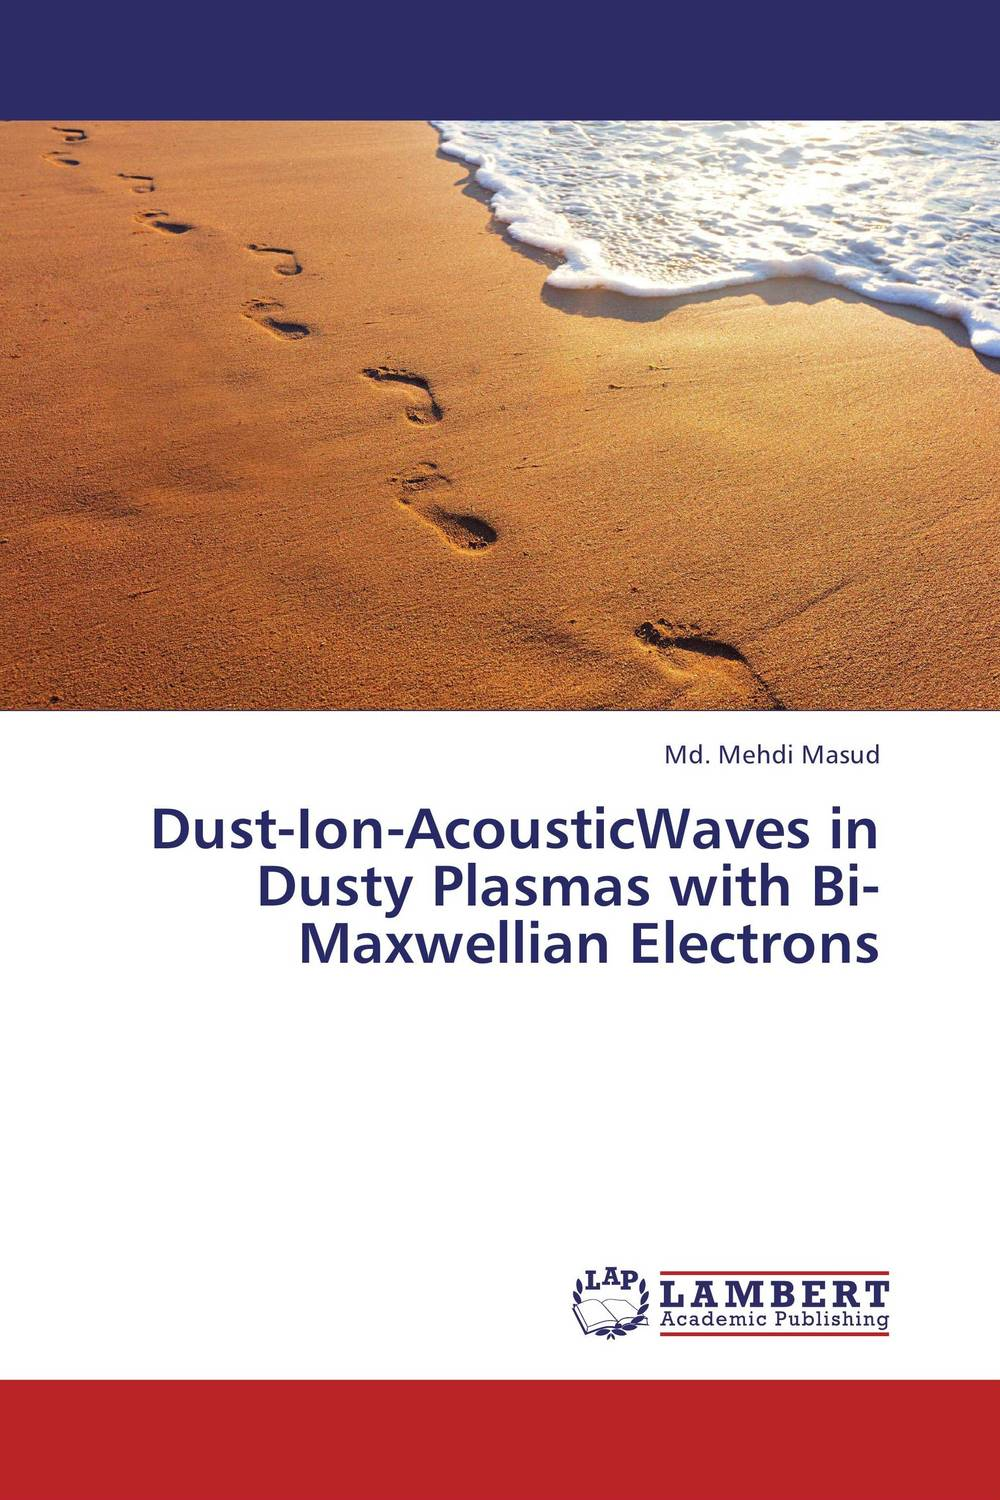 Dust-Ion-AcousticWaves in Dusty Plasmas with Bi-Maxwellian Electrons дозоры издательство аст